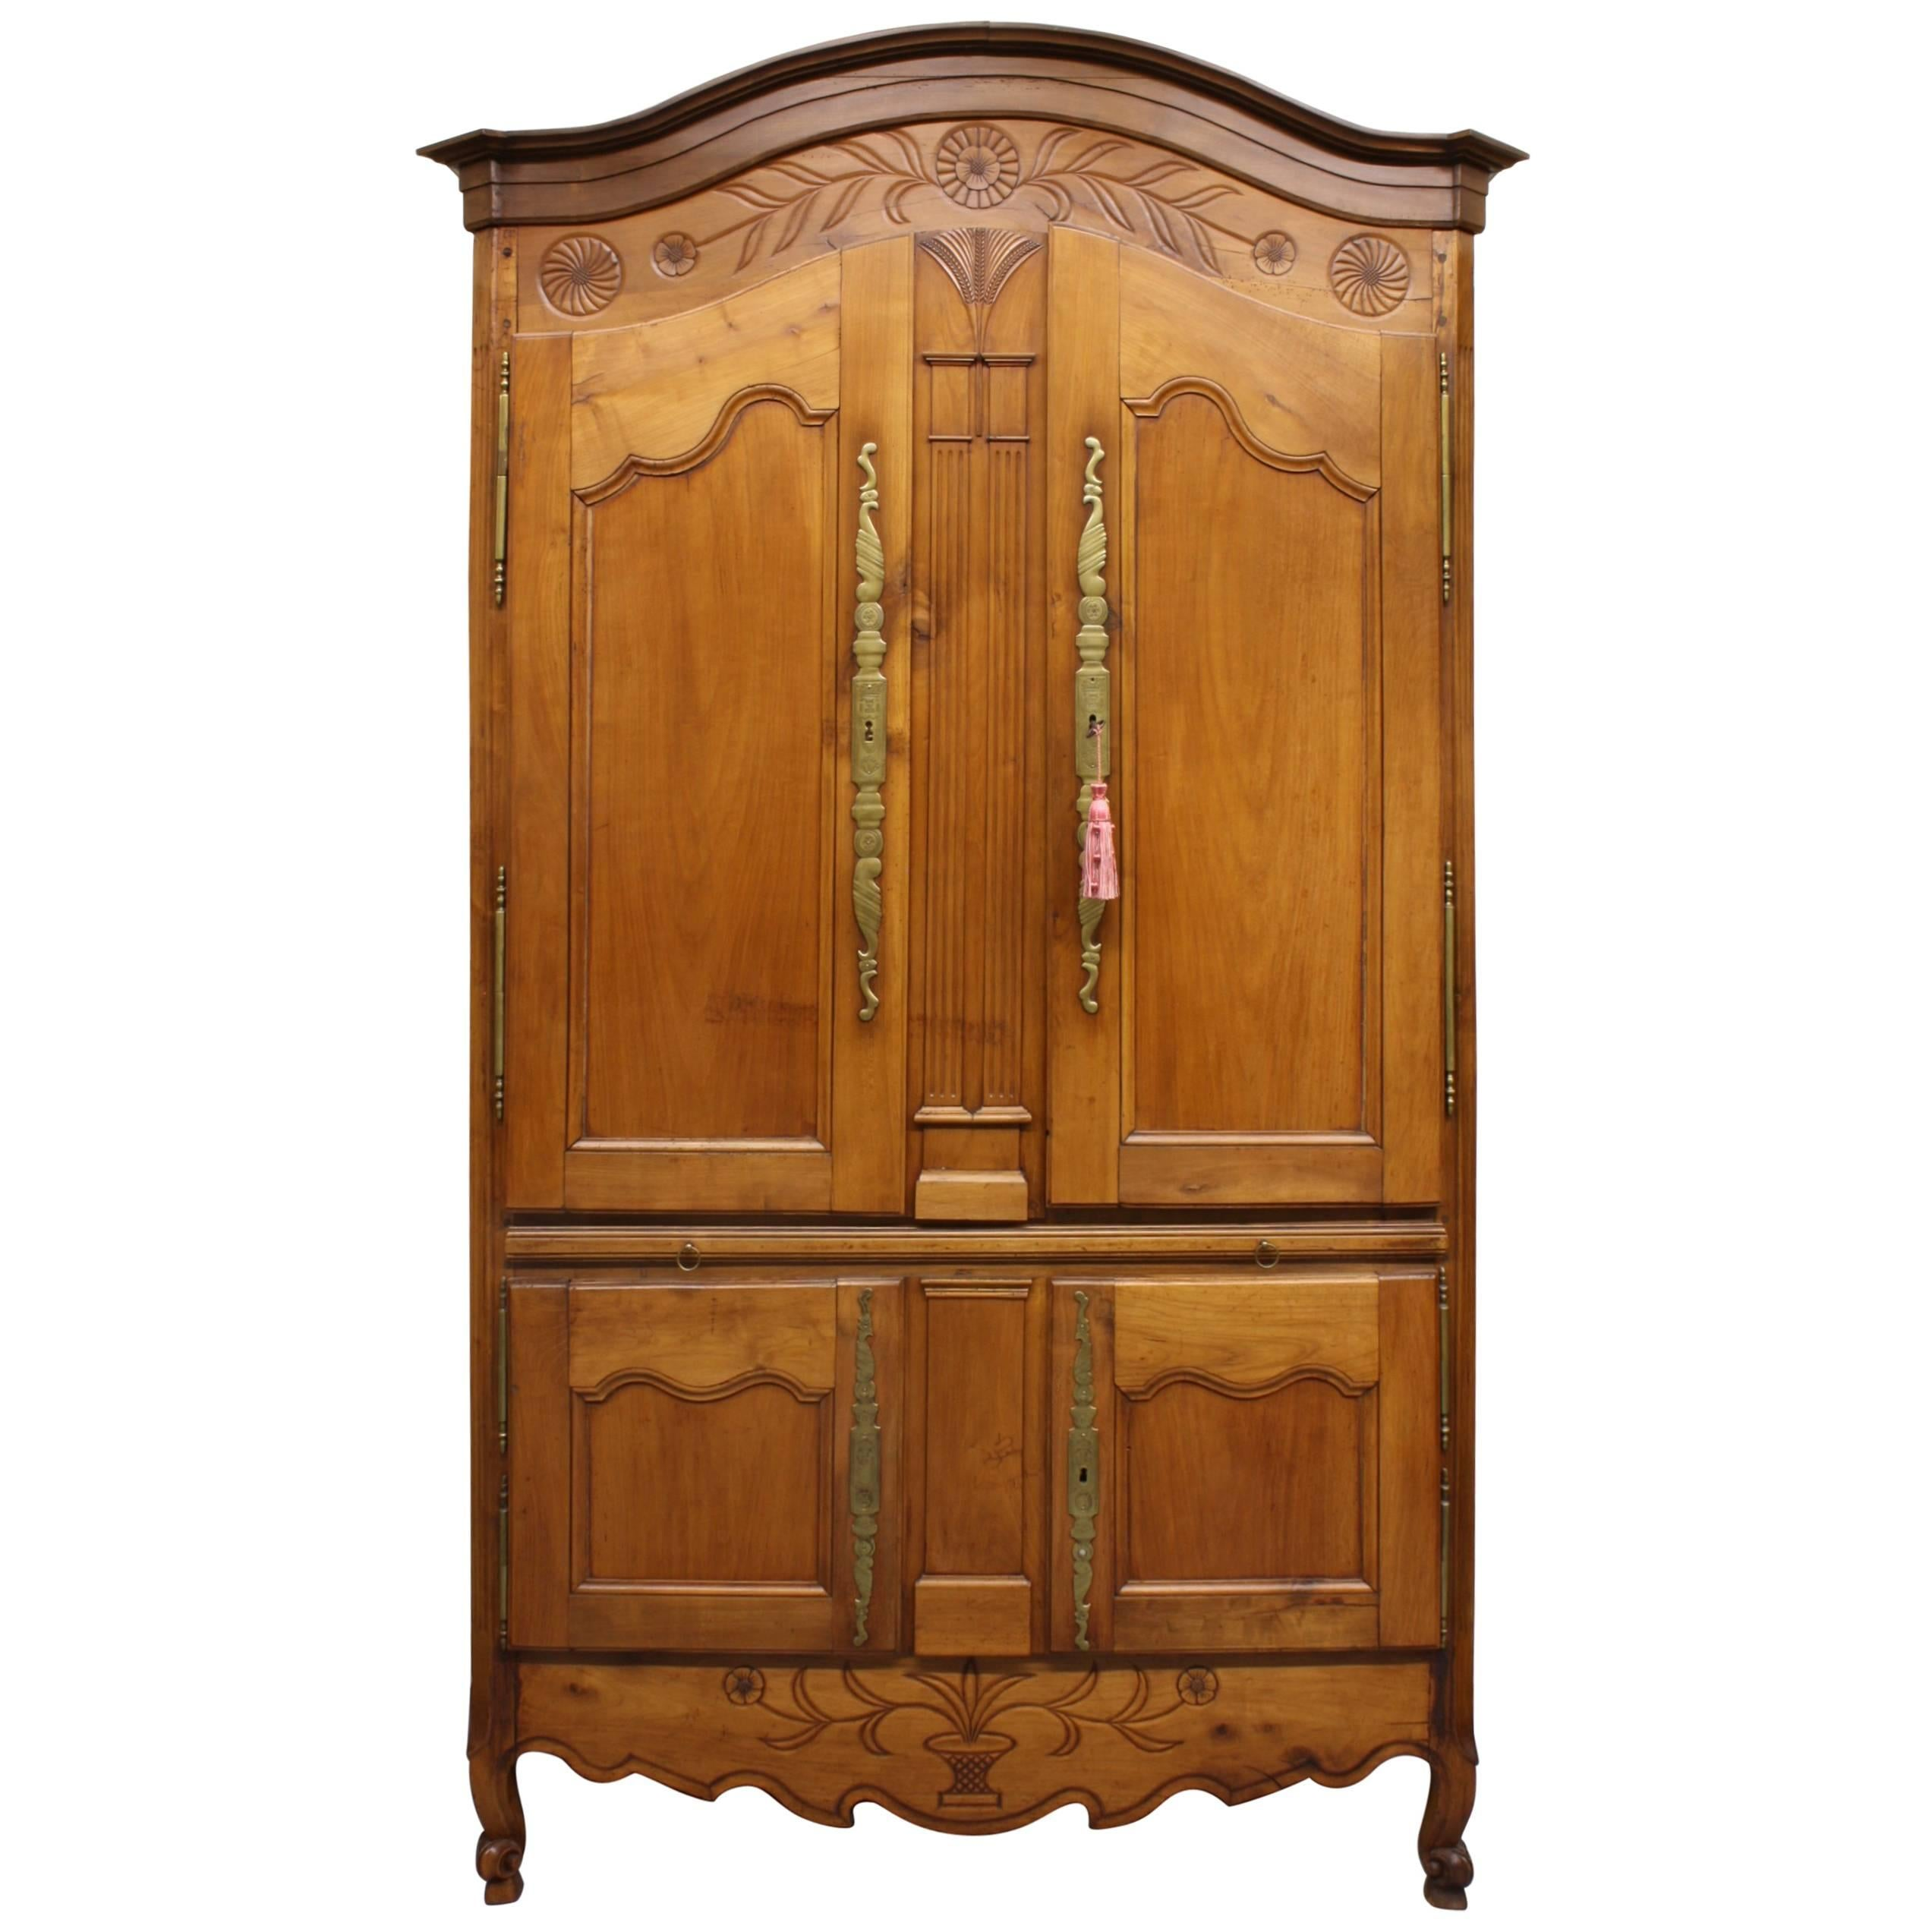 French Country Cherry Cupboard or Armoire with Four Doors and Shelf